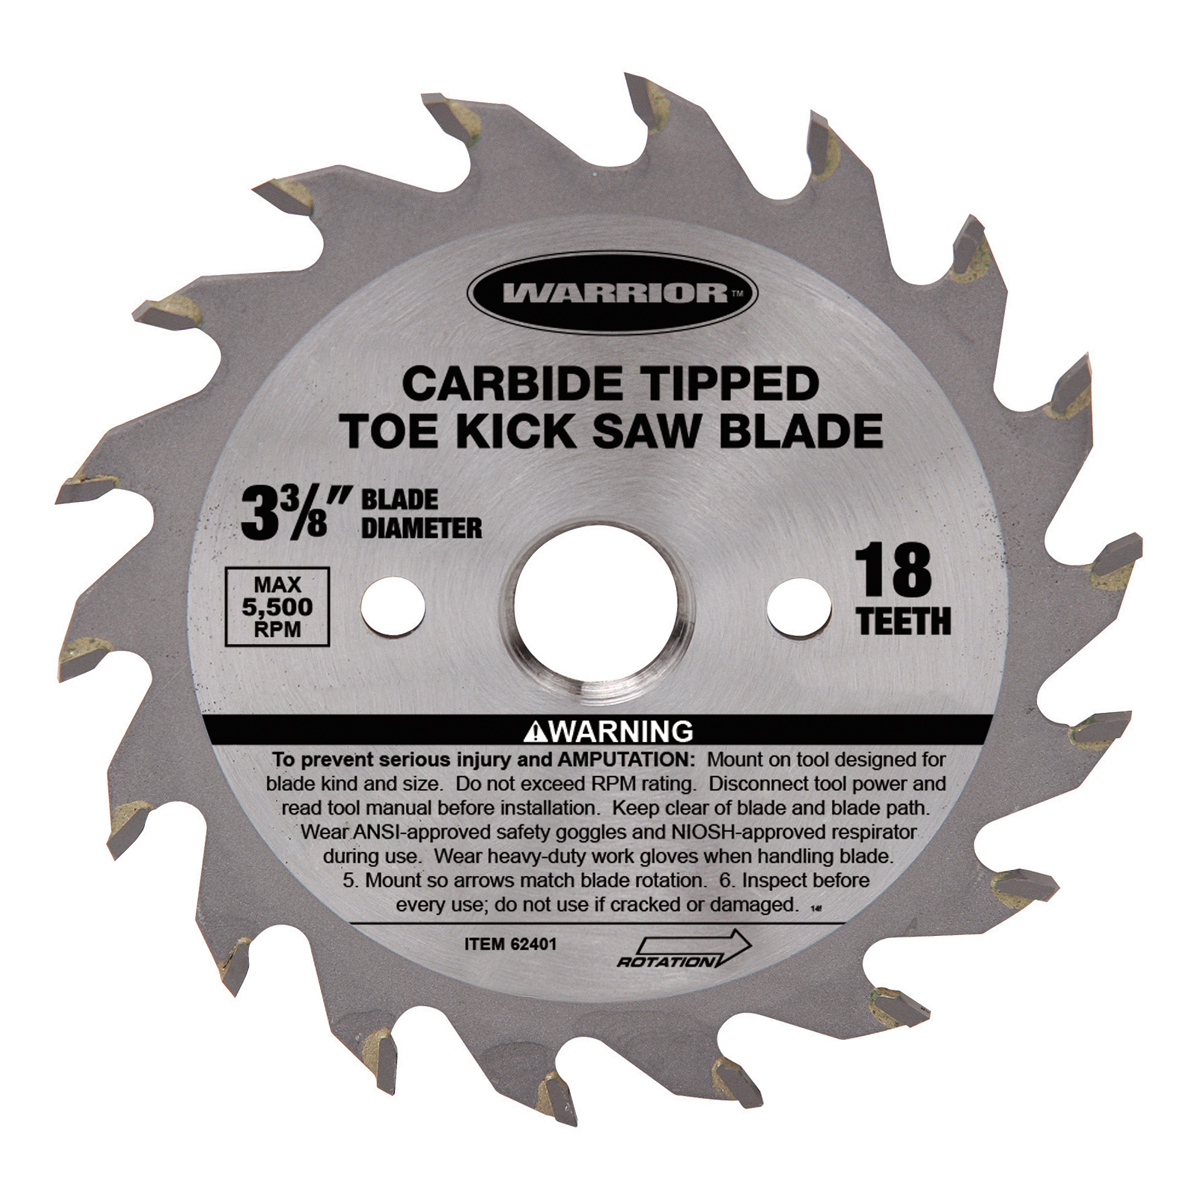 3 38 in 18t toe kick circular saw blade 18t toe kick circular saw blade keyboard keysfo Choice Image